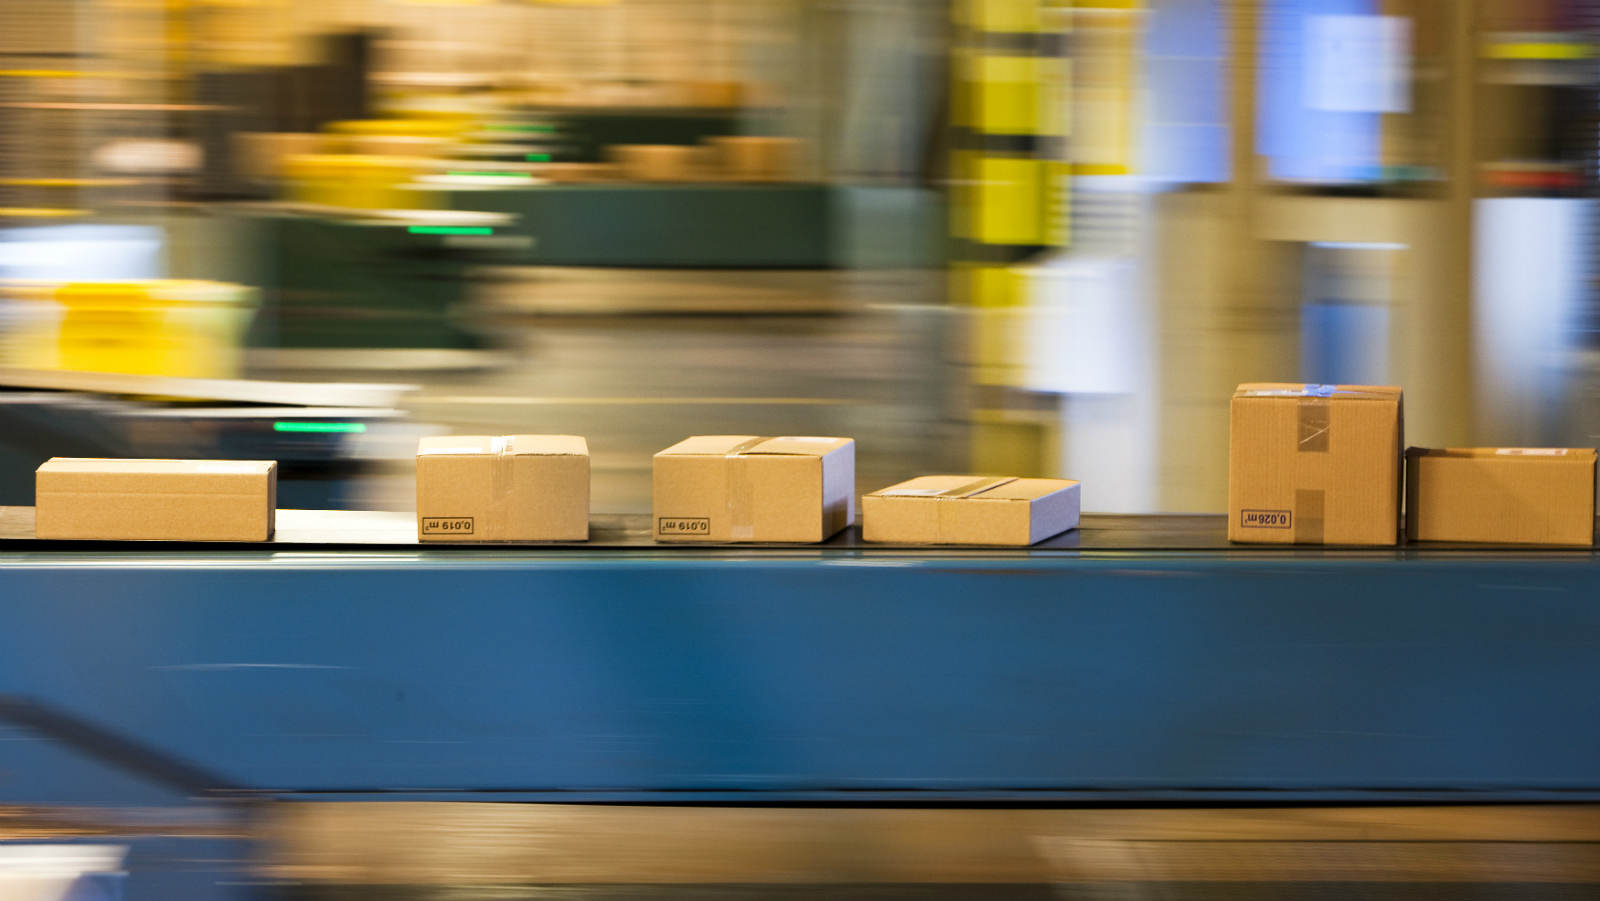 Parcels travel on a conveyer belt before being sorted for delivery in one of the three main Swiss post logistic hubs in Daillens near Lausanne, November 9, 2010. The Swiss post parcels logistics centre in Daillens handles an average of 135,000 parcels a day.